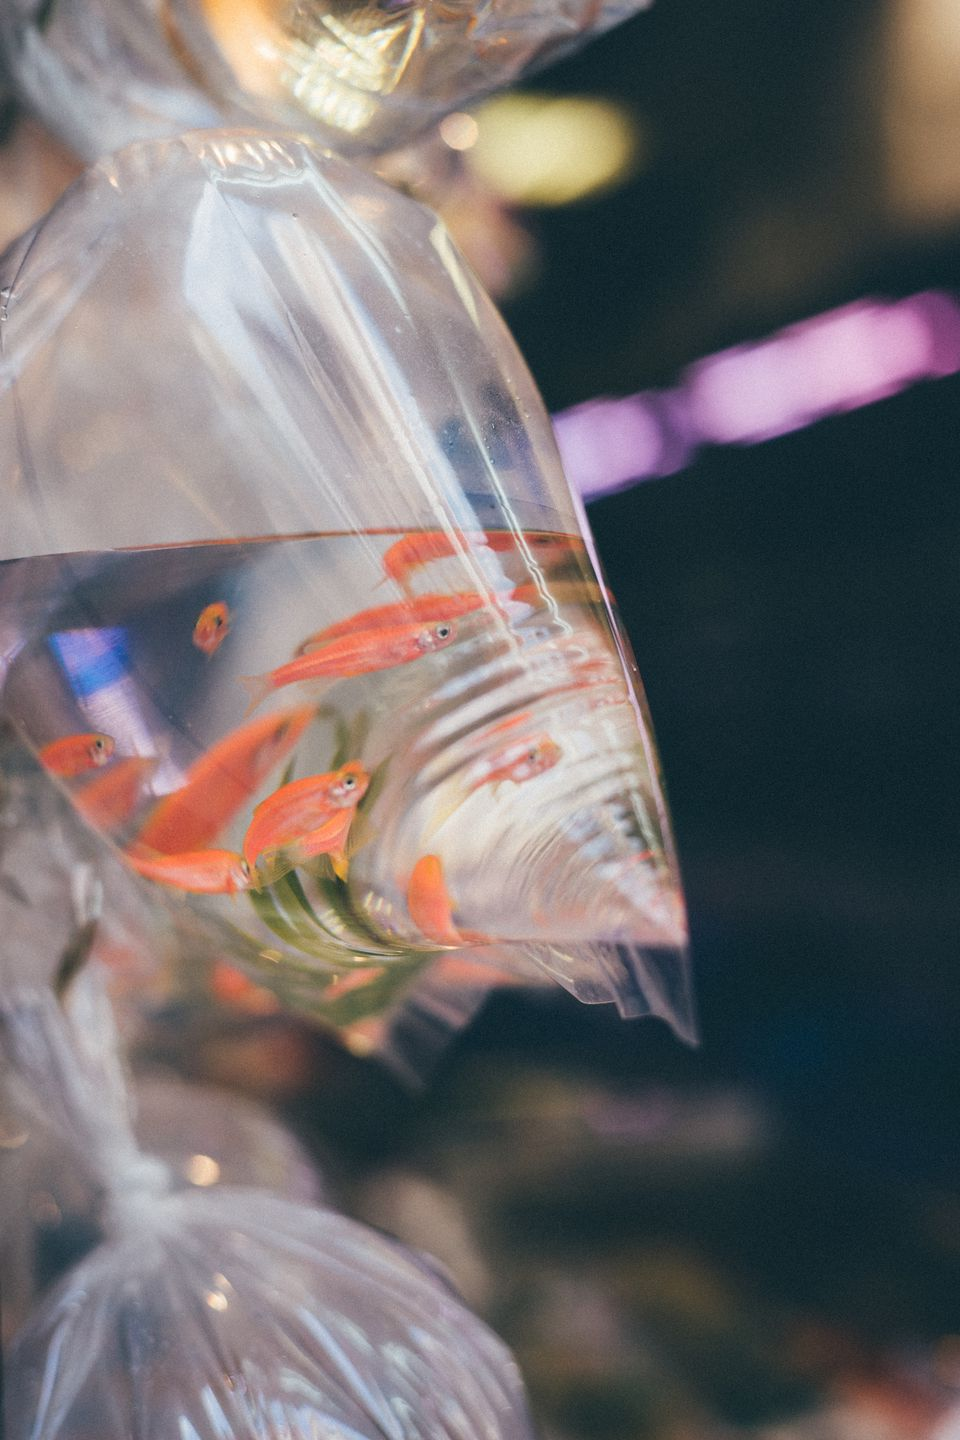 New fish in a plastic bag of water